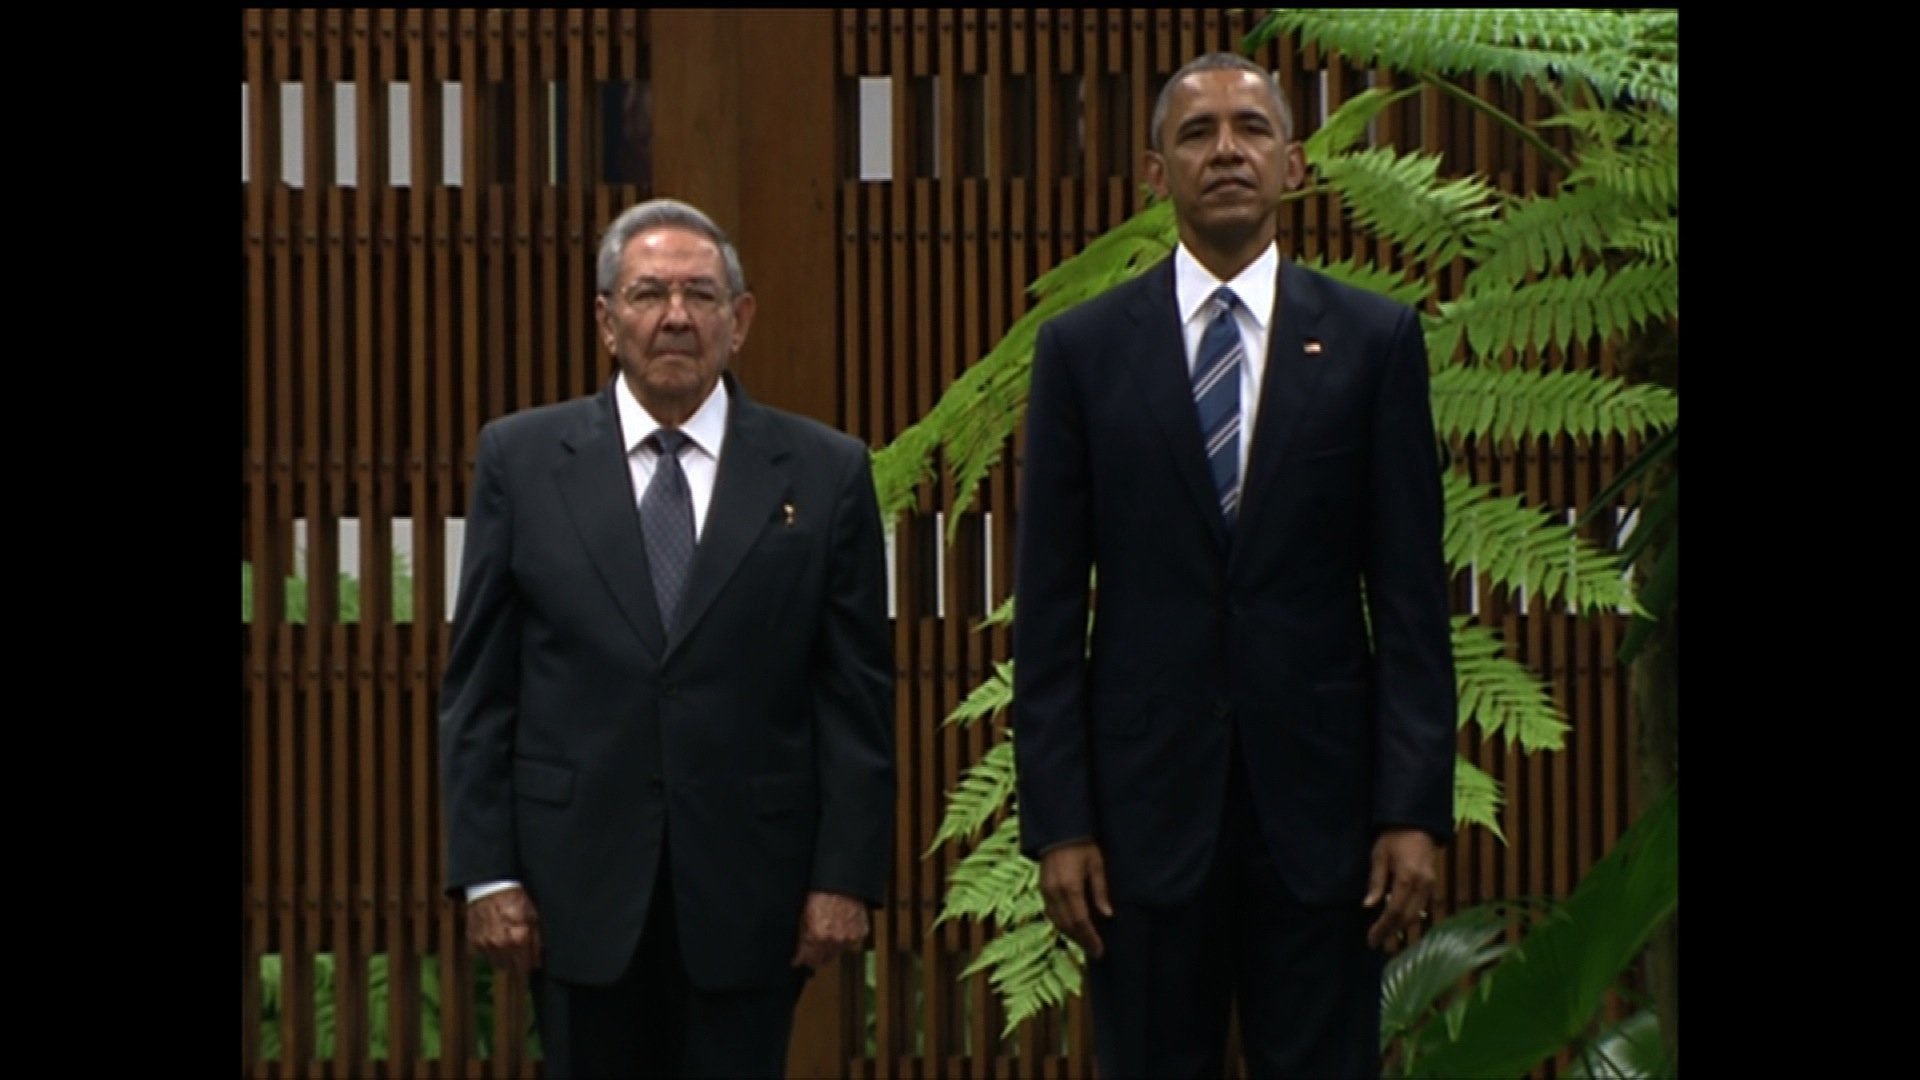 A day after making an historic arrival in Cuba, President Barack Obama met with lCuban leader Raul Castro as part of his efforts to elicit change on the island.